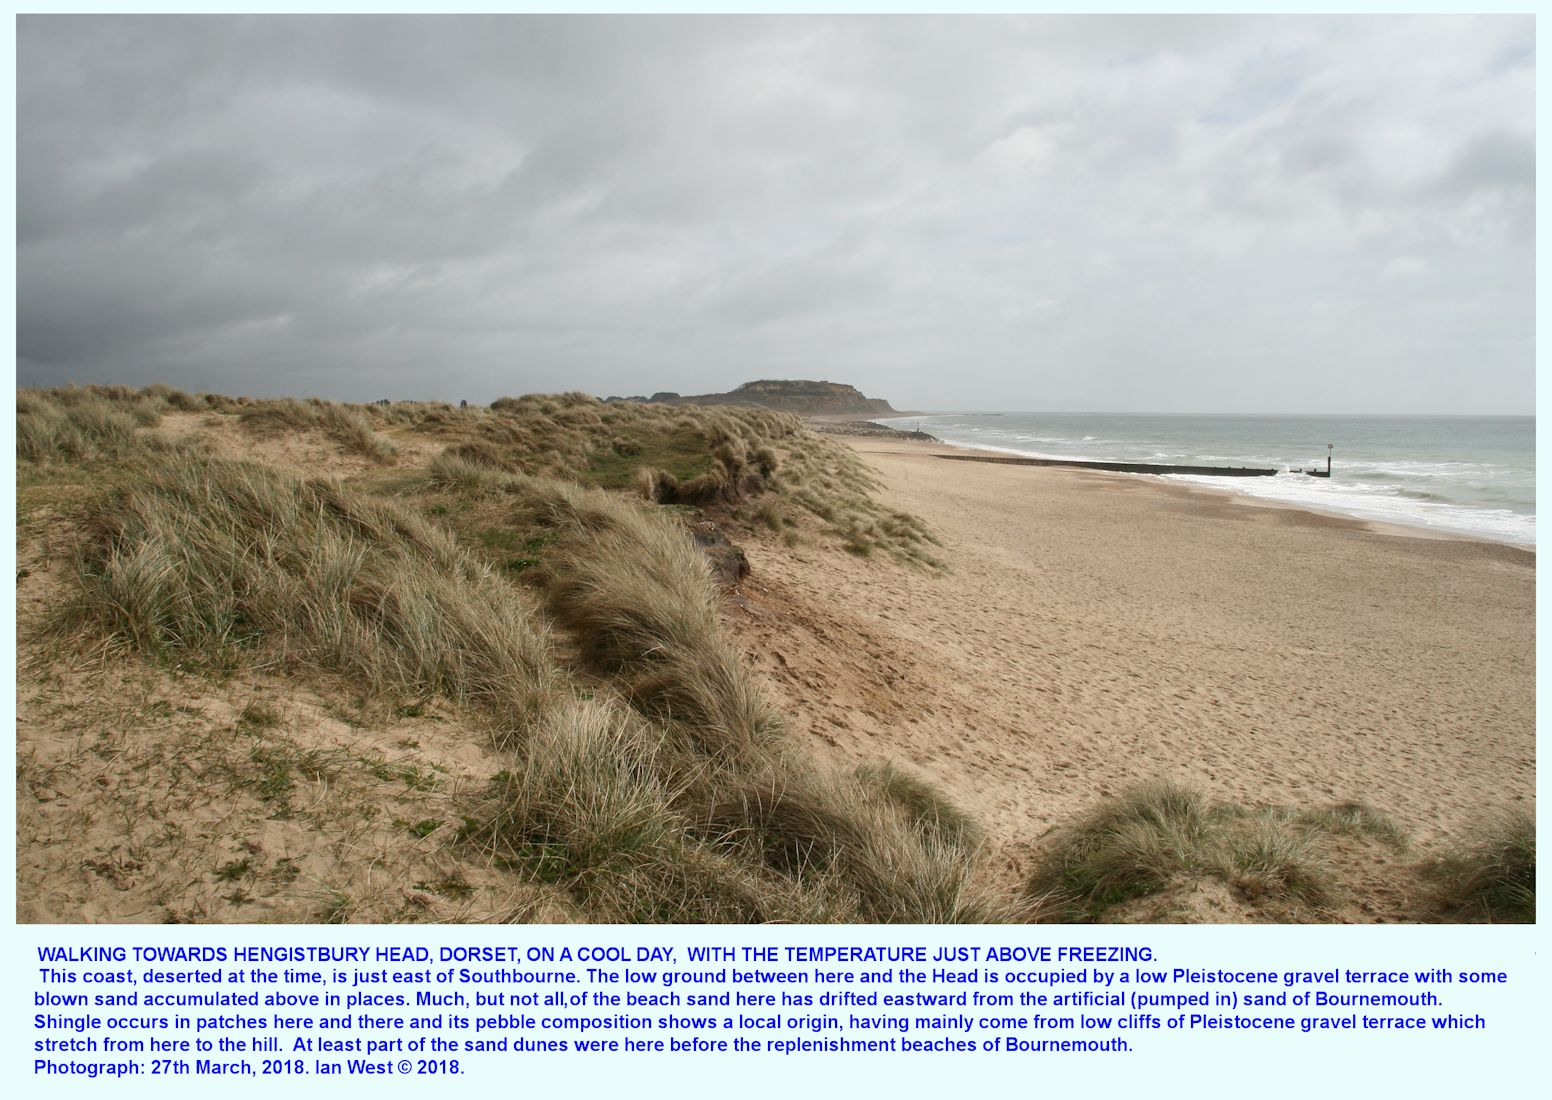 Hengistbury Head, Bournemouth, Dorset, a distant view on a cold day, when walking eastward from the sand-dunes near Southbourne, 27th April 2018